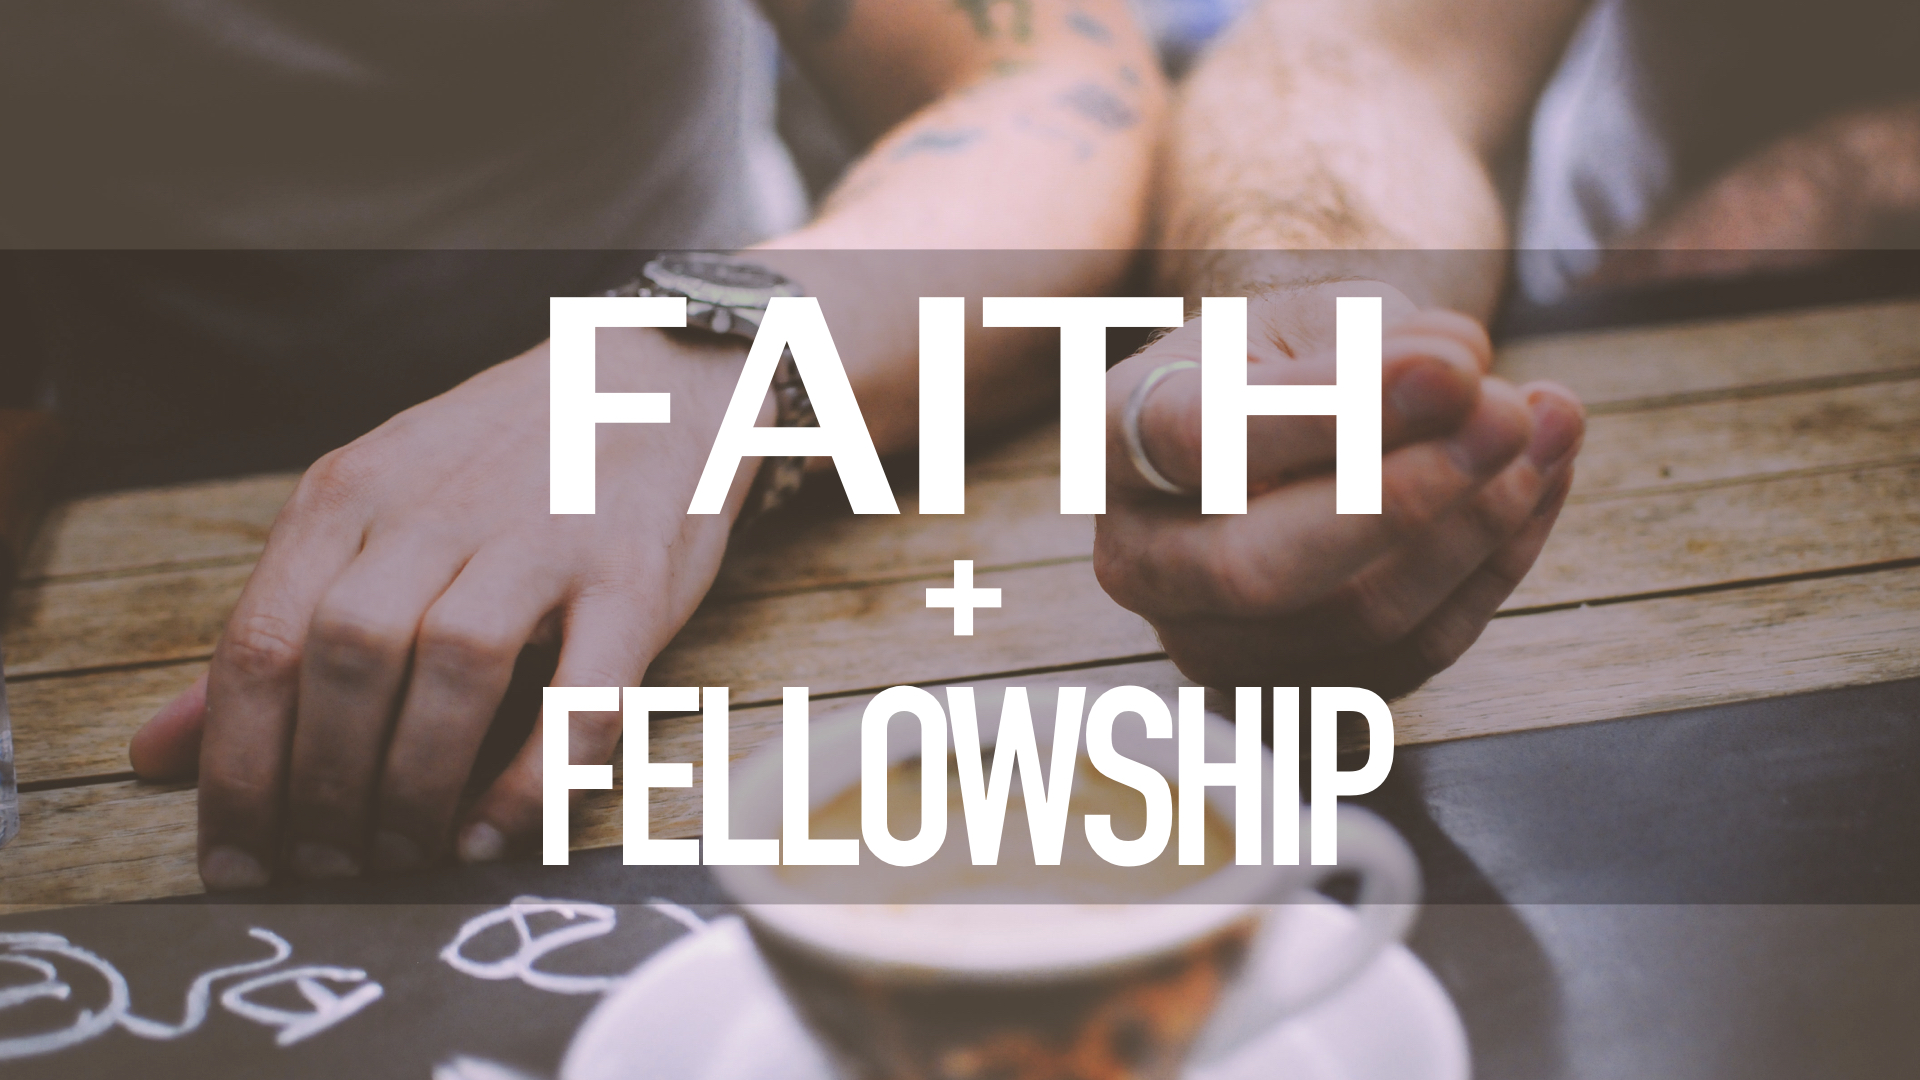 Faith + Fellowship